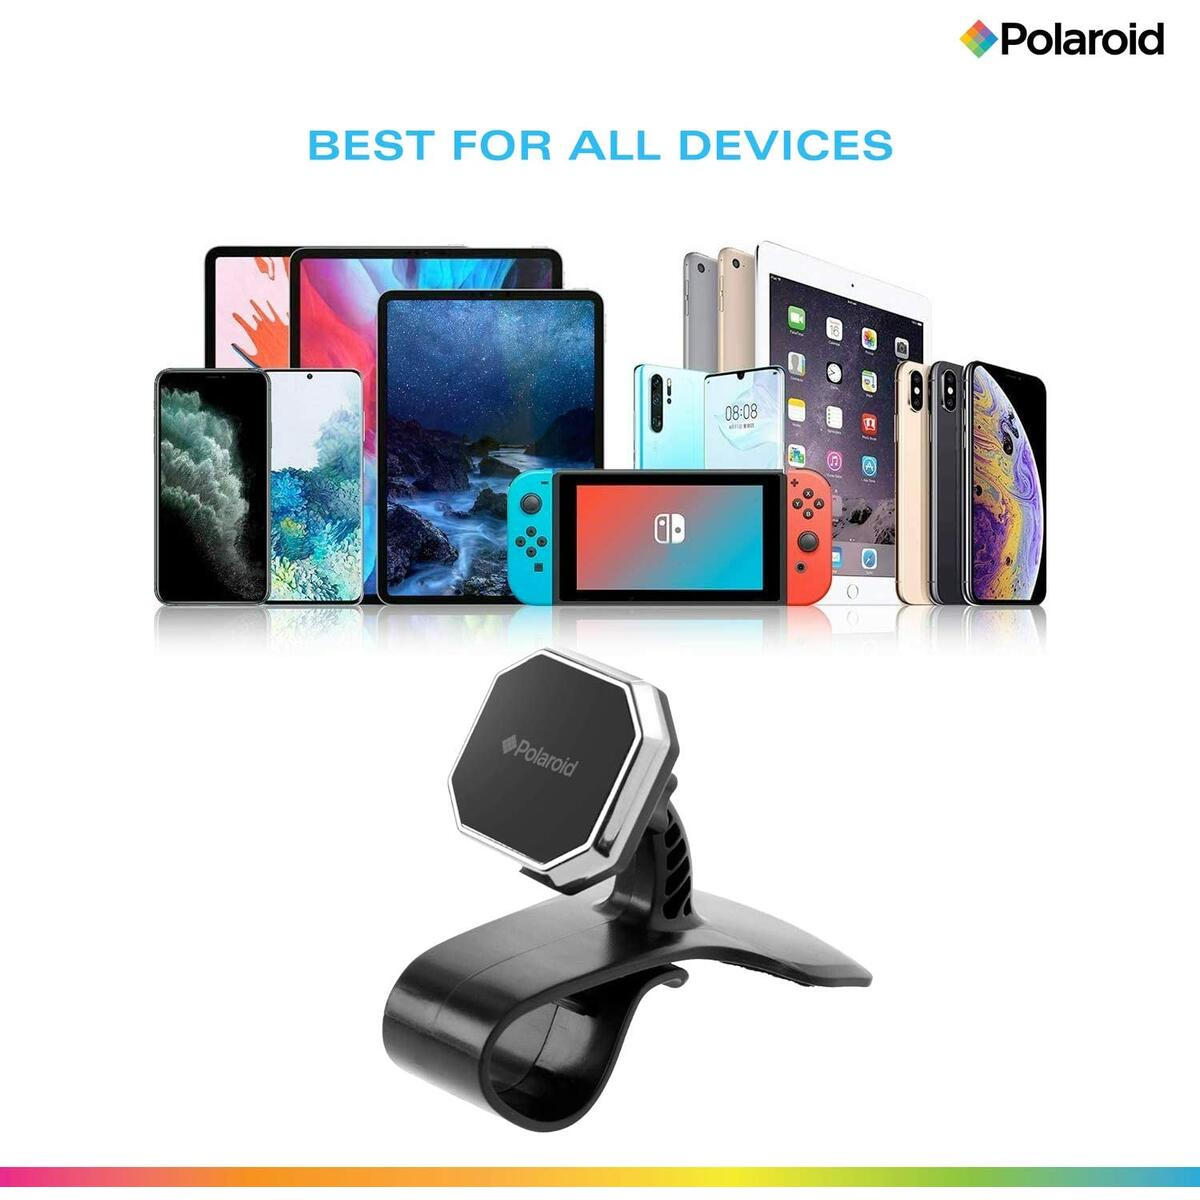 Polaroid Car Dashboard Cell Phone Holder – Universal Magnetic Mount to Hold Any Smartphone